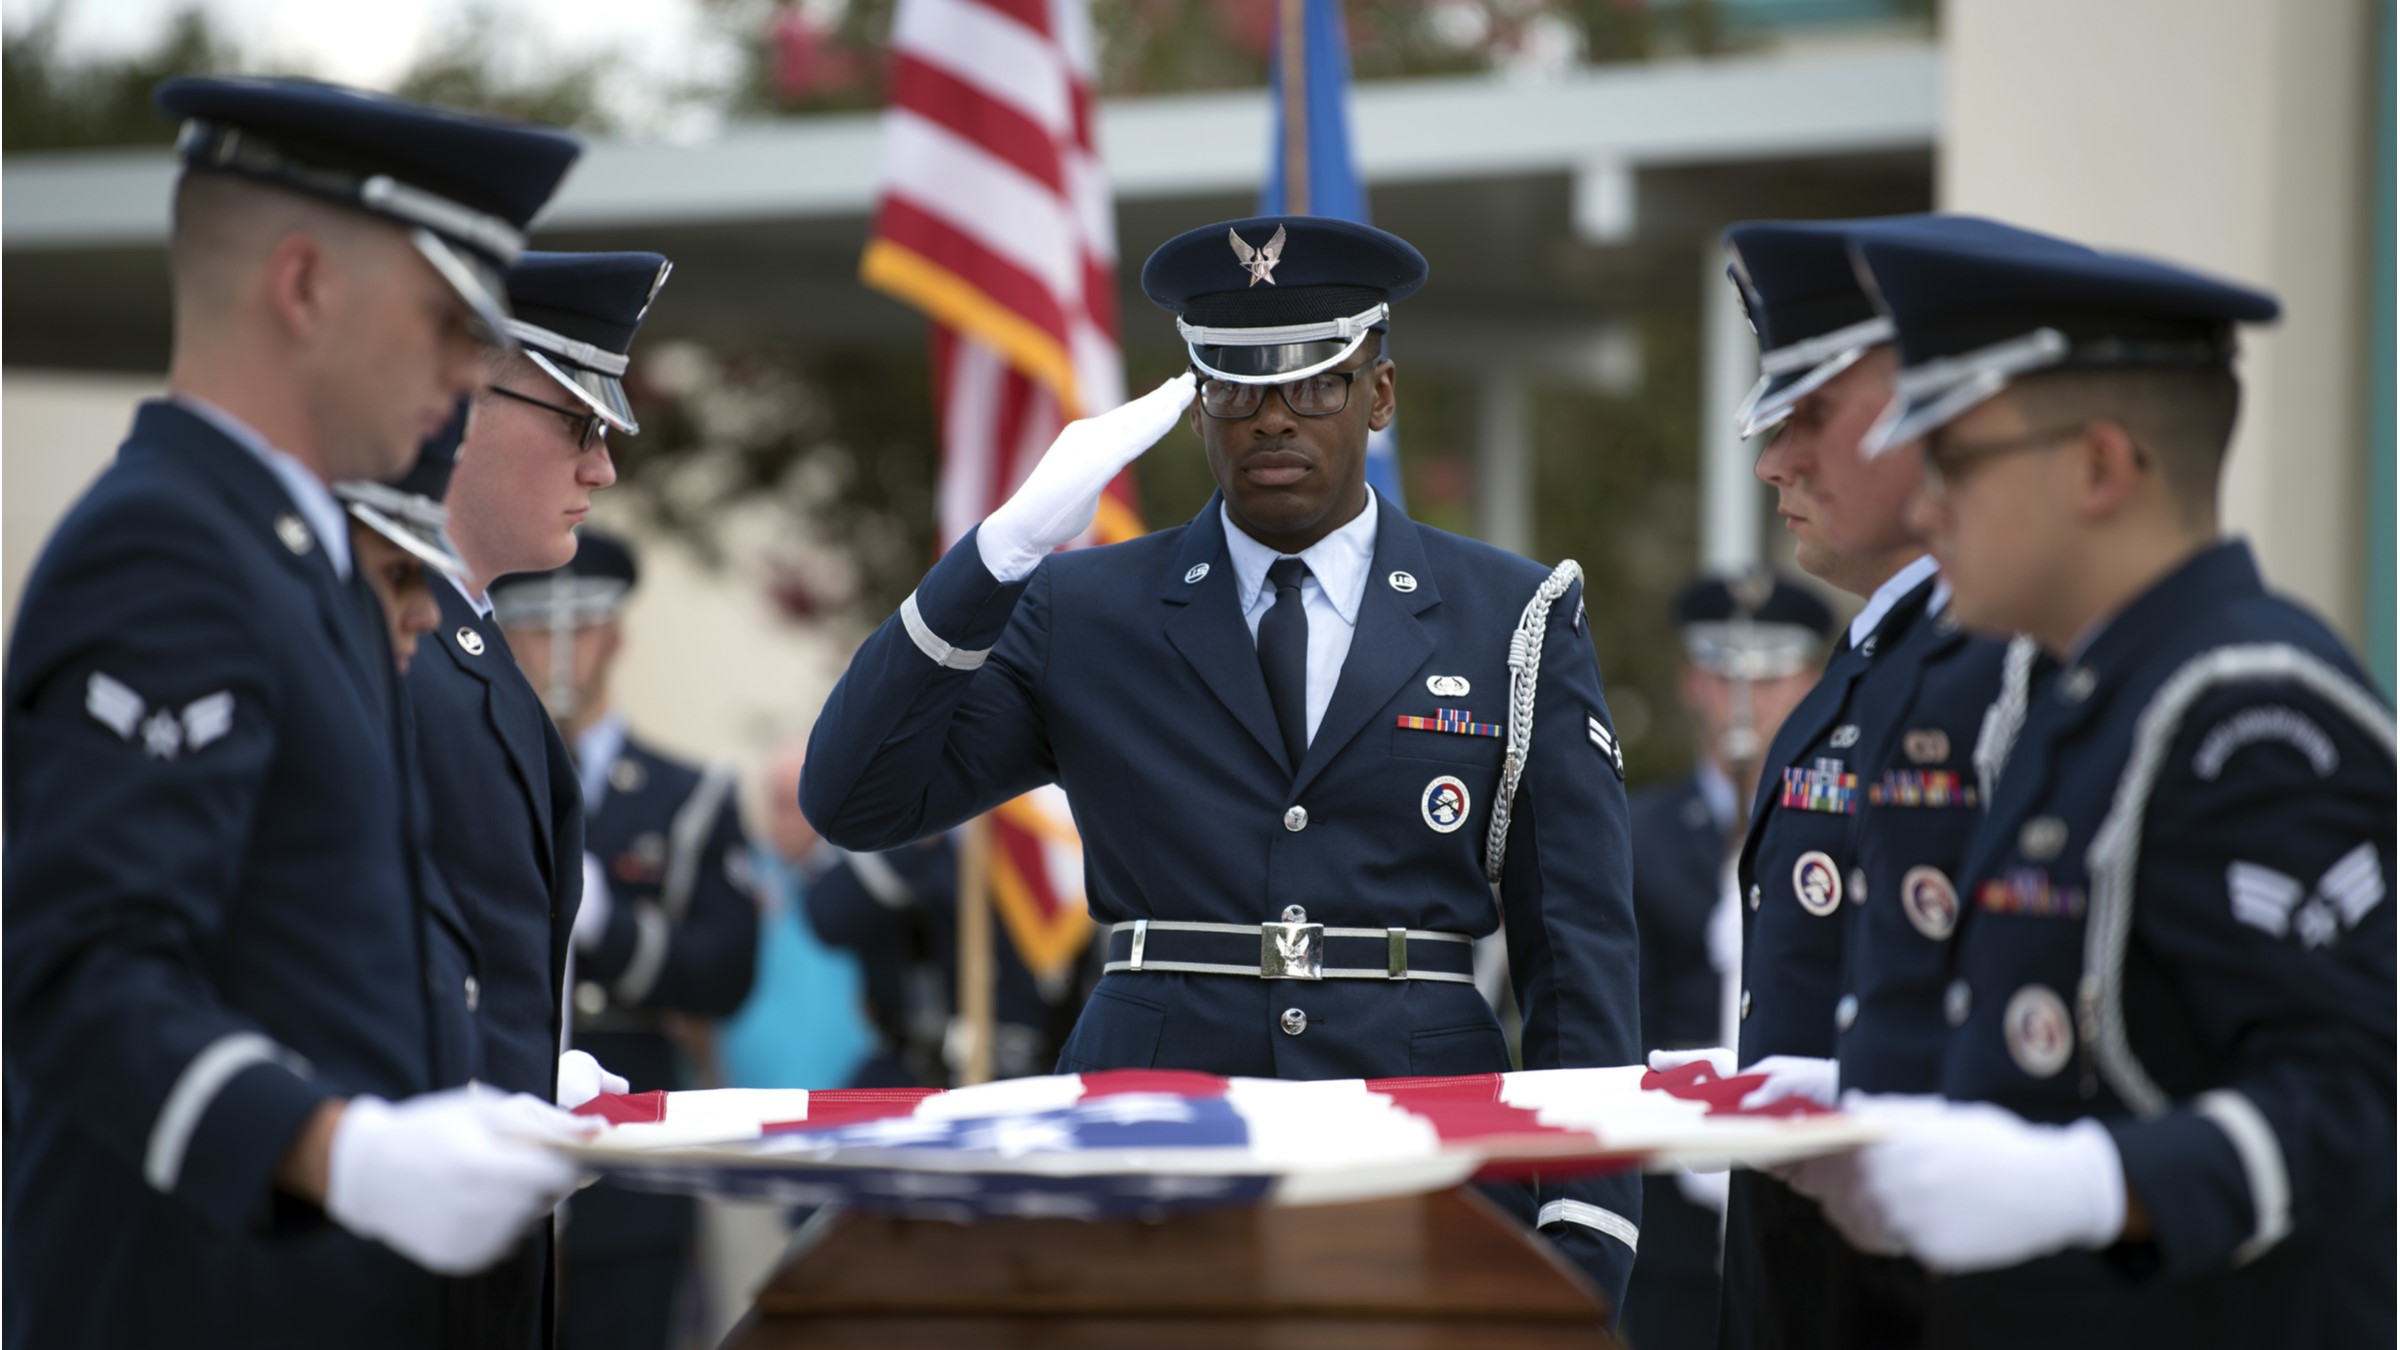 Air Force honor guard performs military honors service.